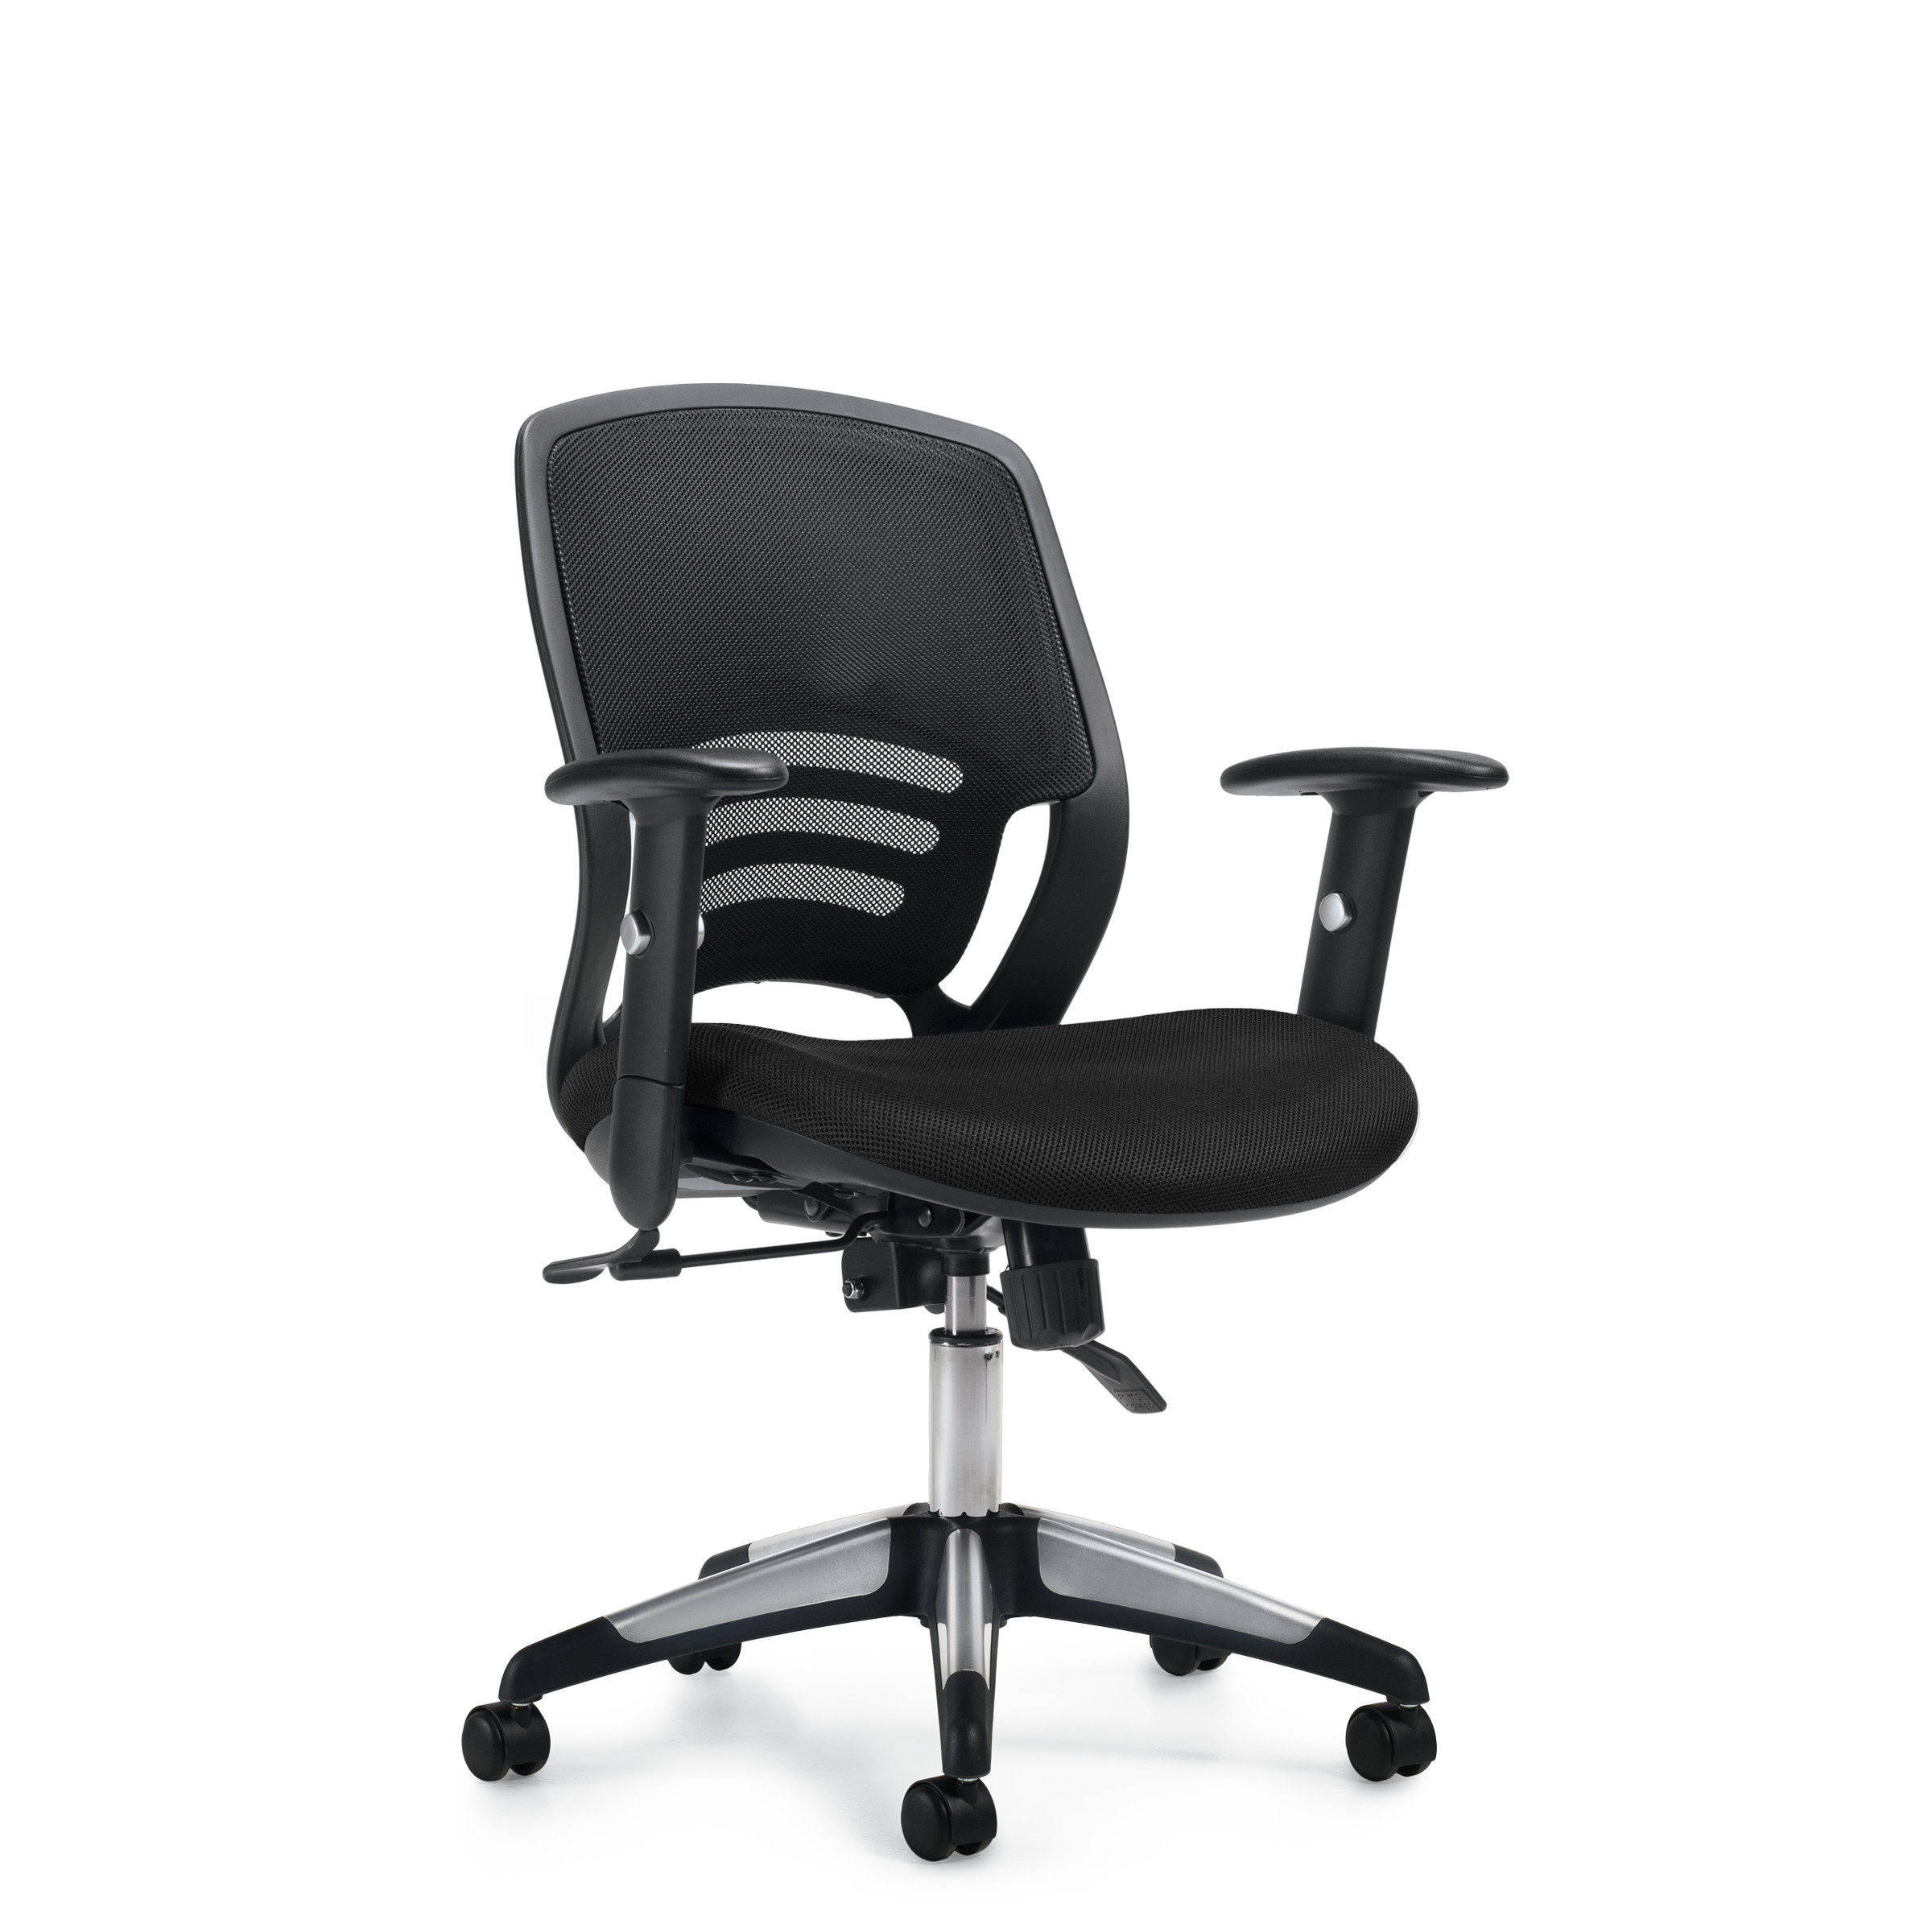 OTG Mesh Mid Back Managers Chair #OTG11686B